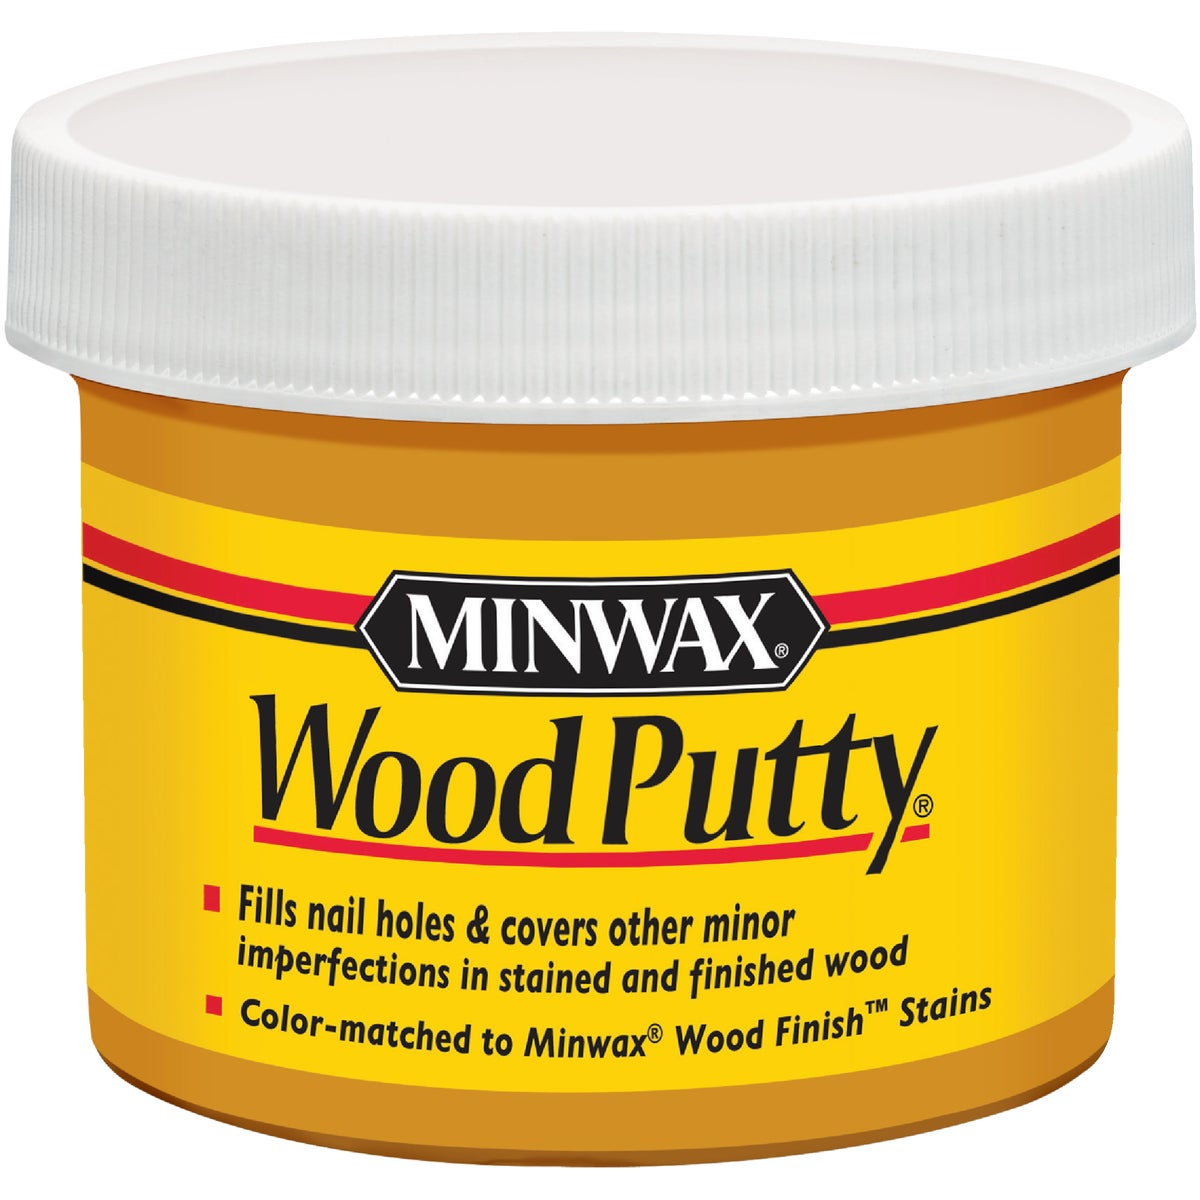 COLONL MAPLE WOOD PUTTY - 13612 by Minwax Company